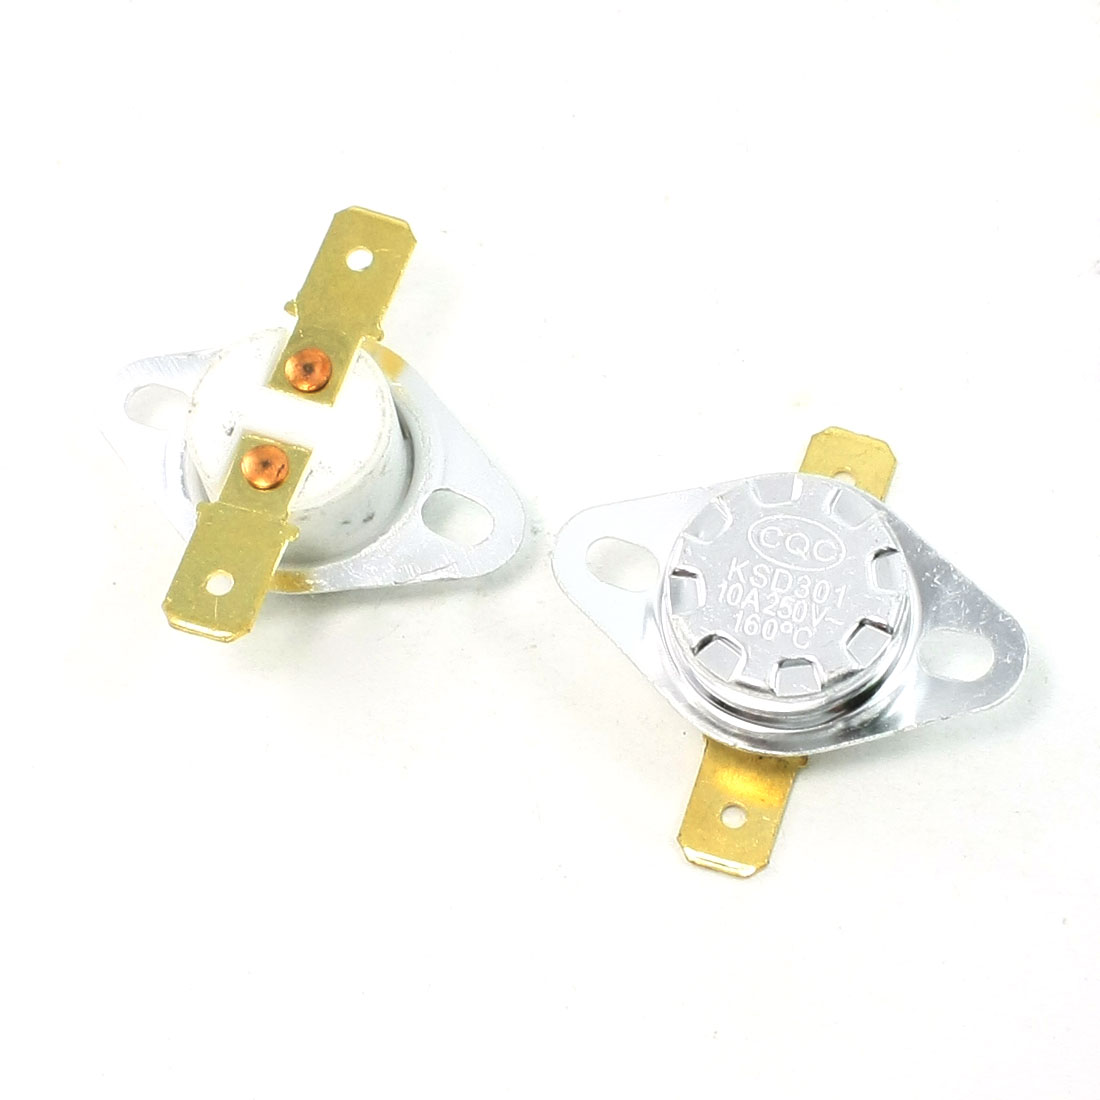 2 Pcs 160C NC 2 Pin Terminals Temperature Control Ceramic Thermostat 10A AC250V